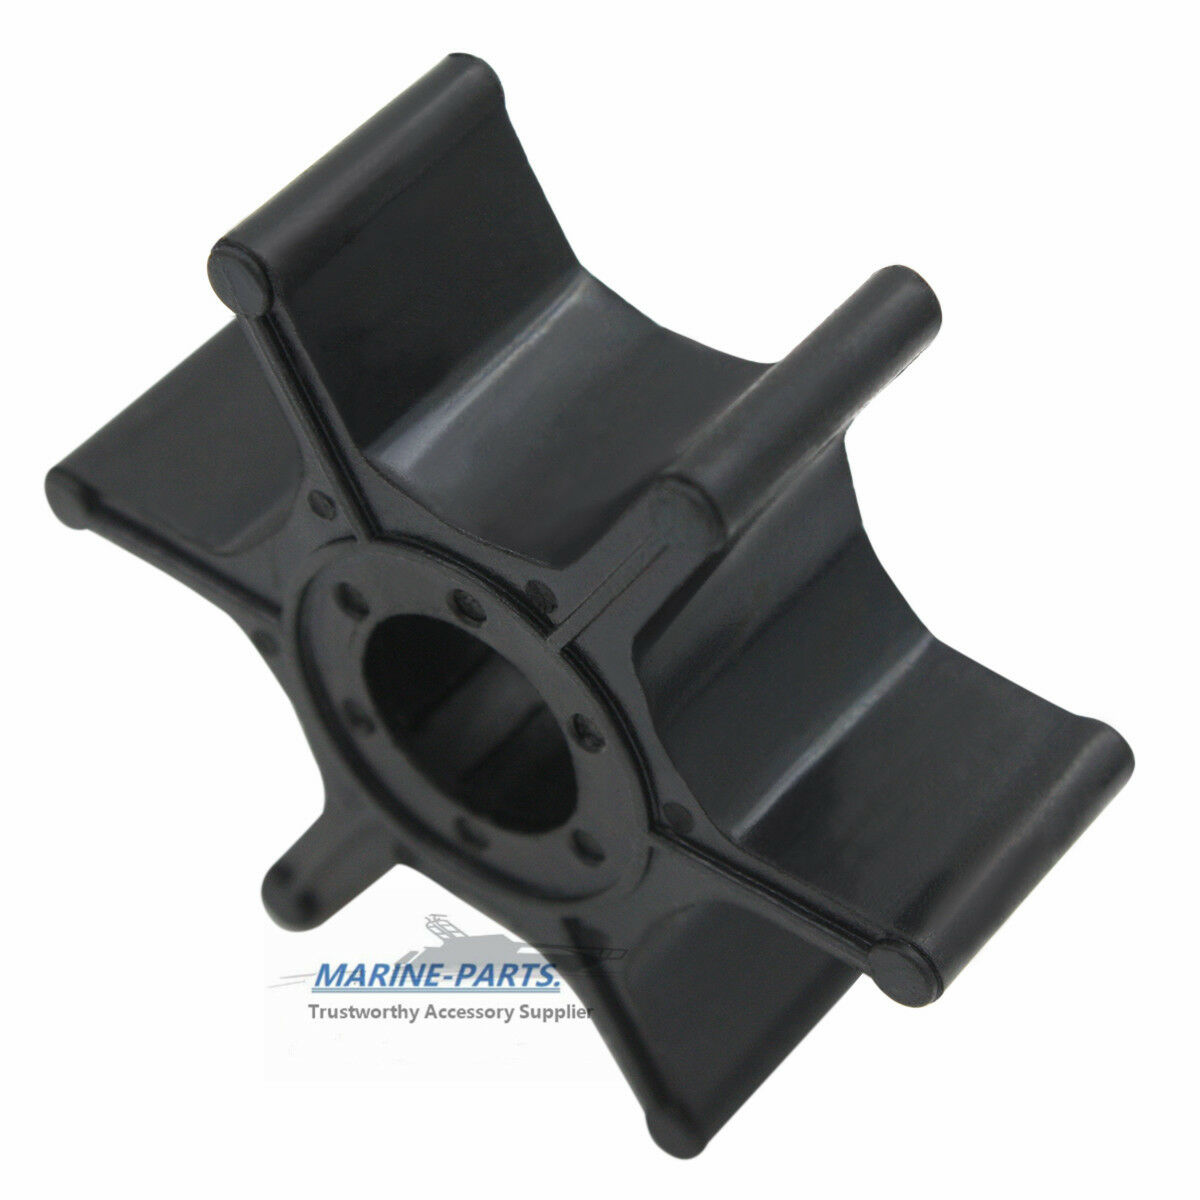 8HP Outboard 2-Stroke 4HP DT4, Impeller 17461-98500 17461-98501 98502 98503 for Suzuki 2HP 4HP